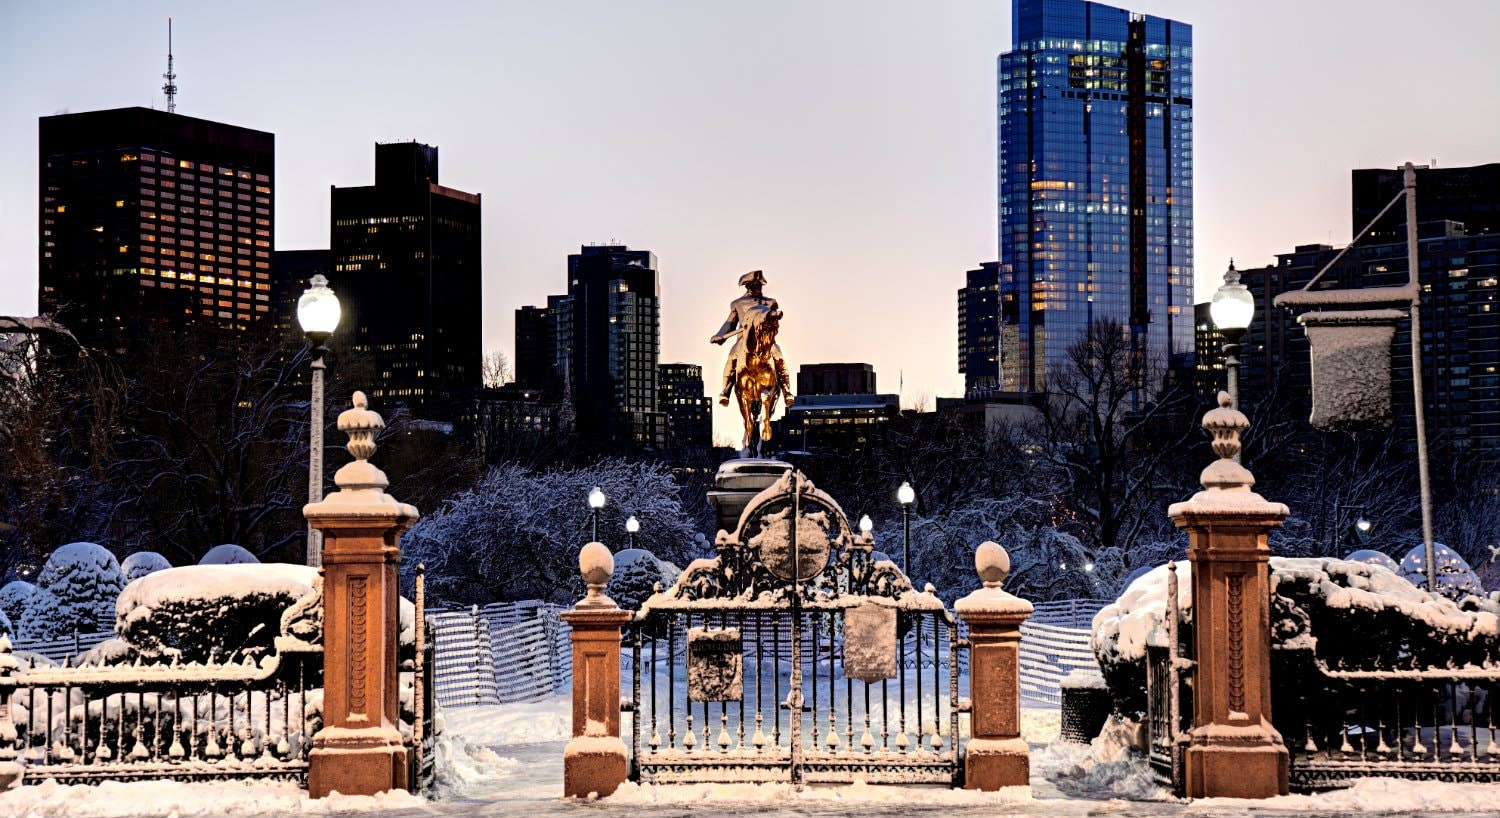 Bronze statue amidst a snow-covered park at dusk with lit up city buildings in the background